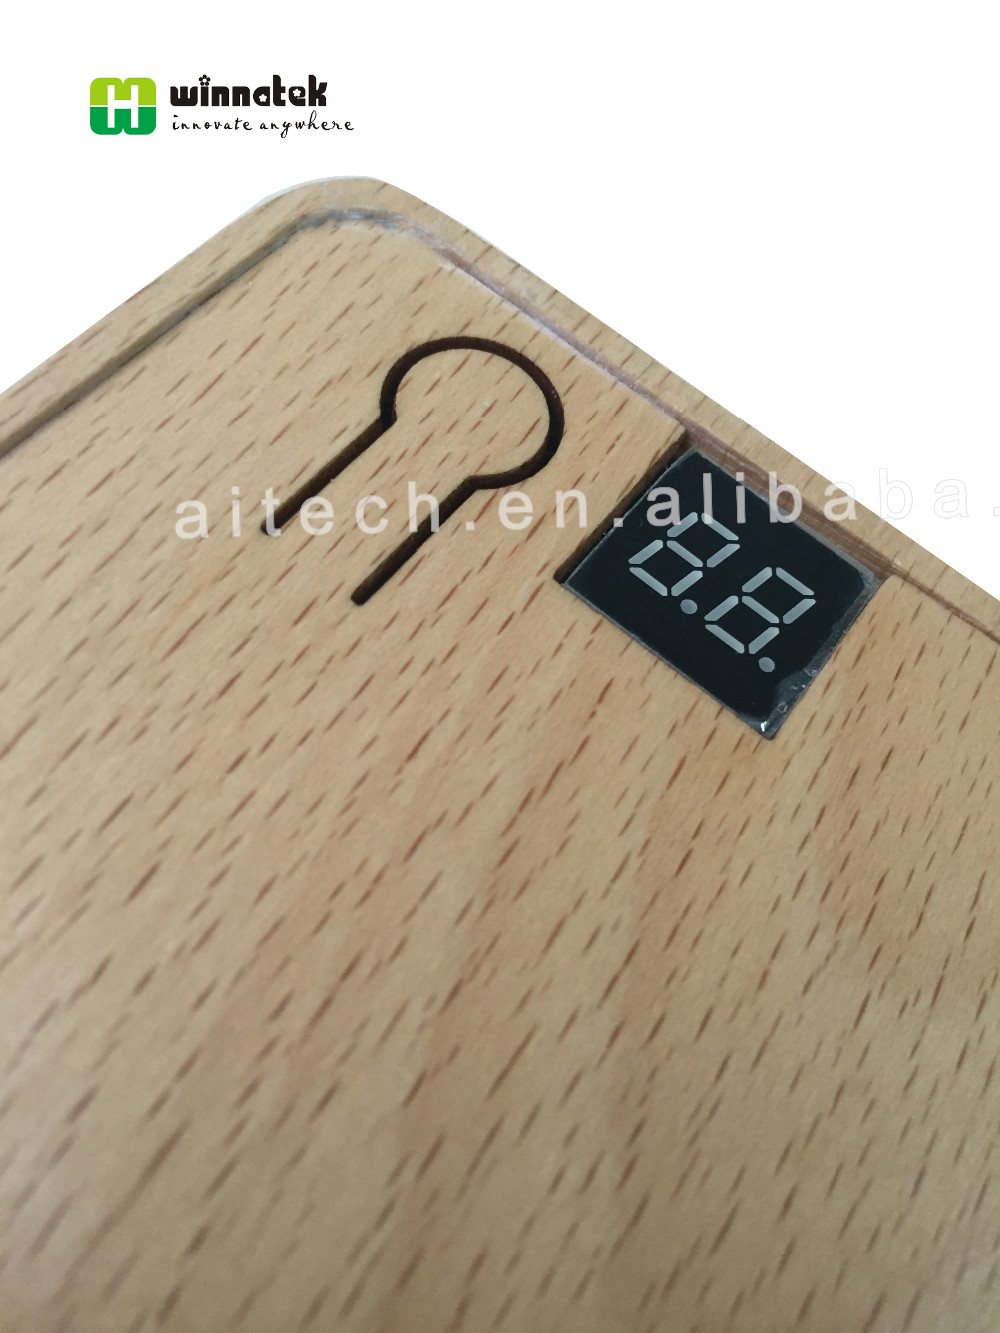 Square custom logo wooden power bank 10400mAh battery capacity with led display indicator